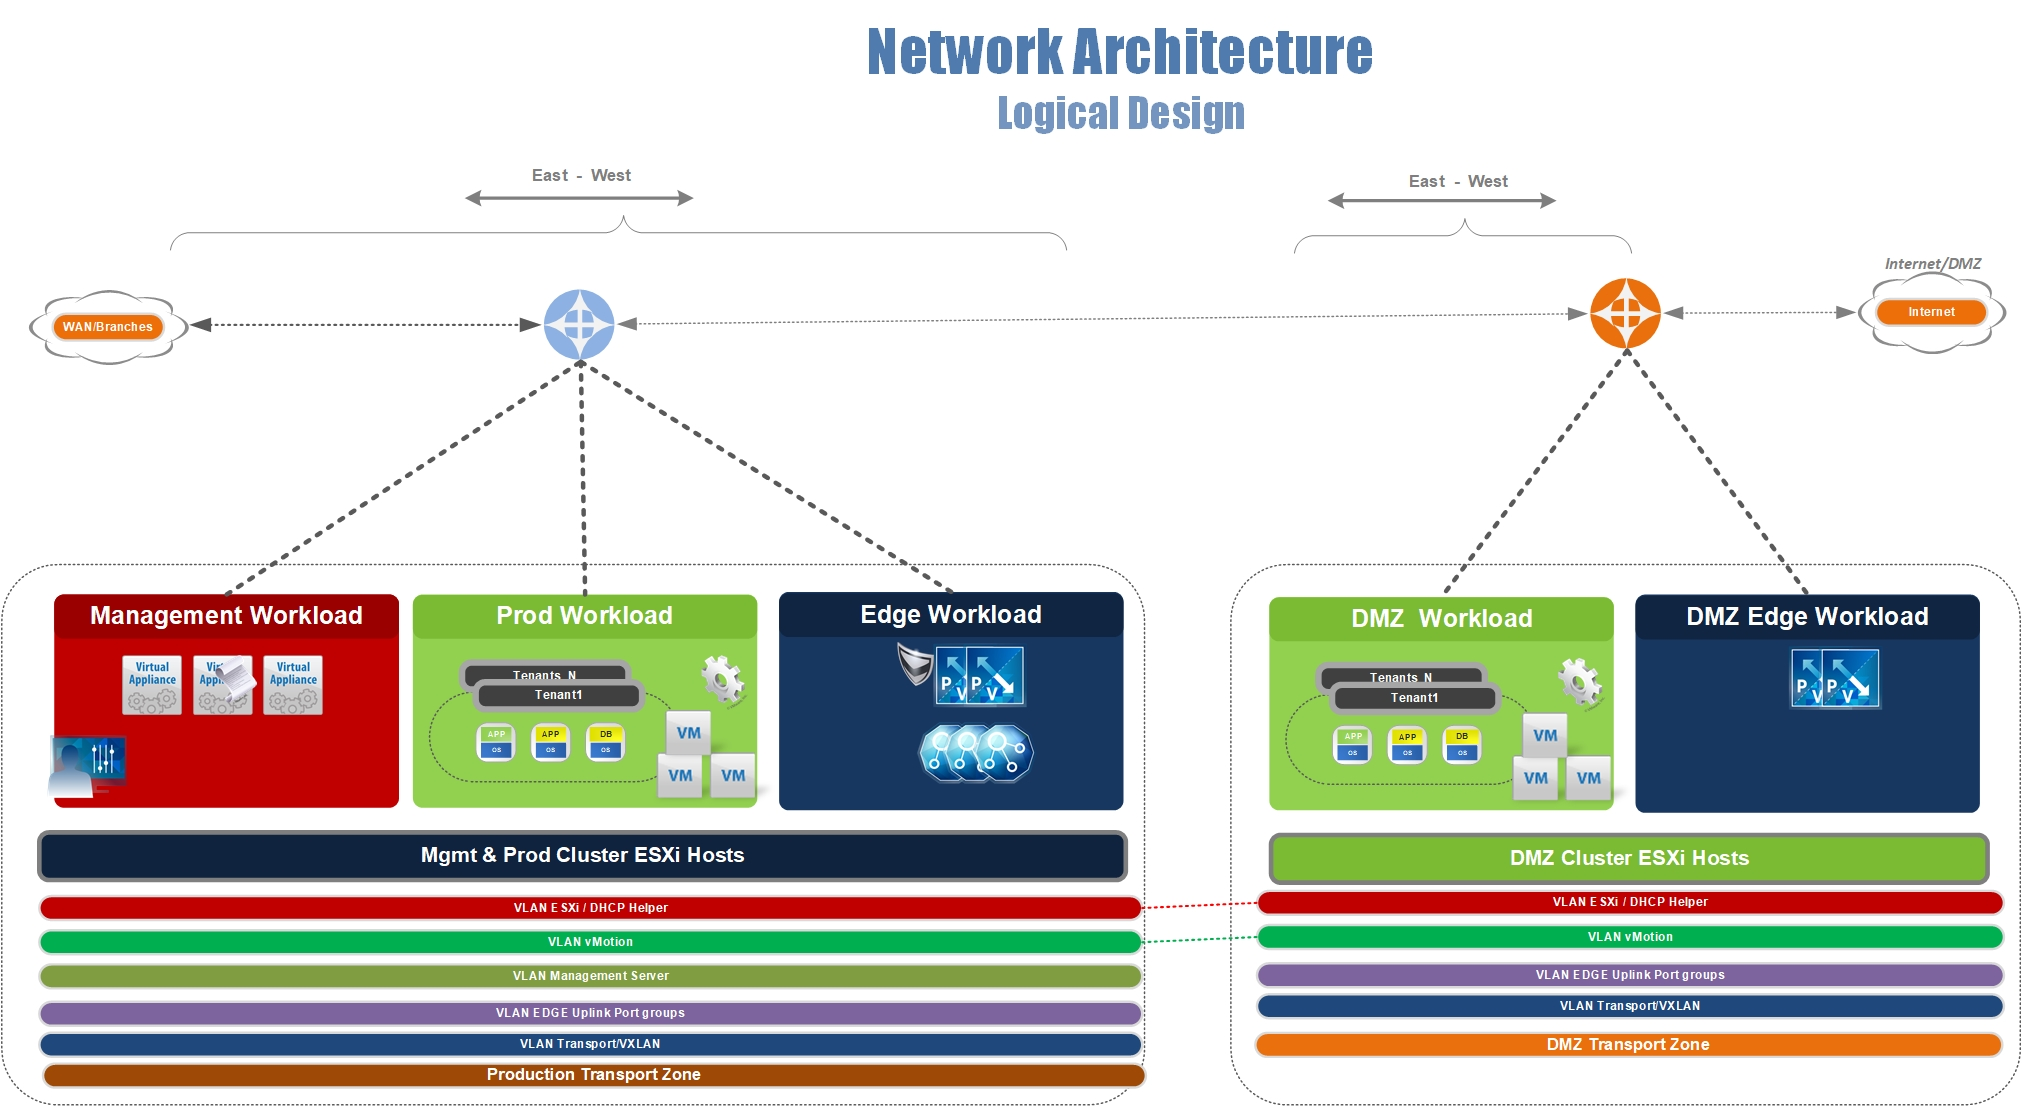 VMWare NSX Detailed Design Guide for Secured Production and DMZ use